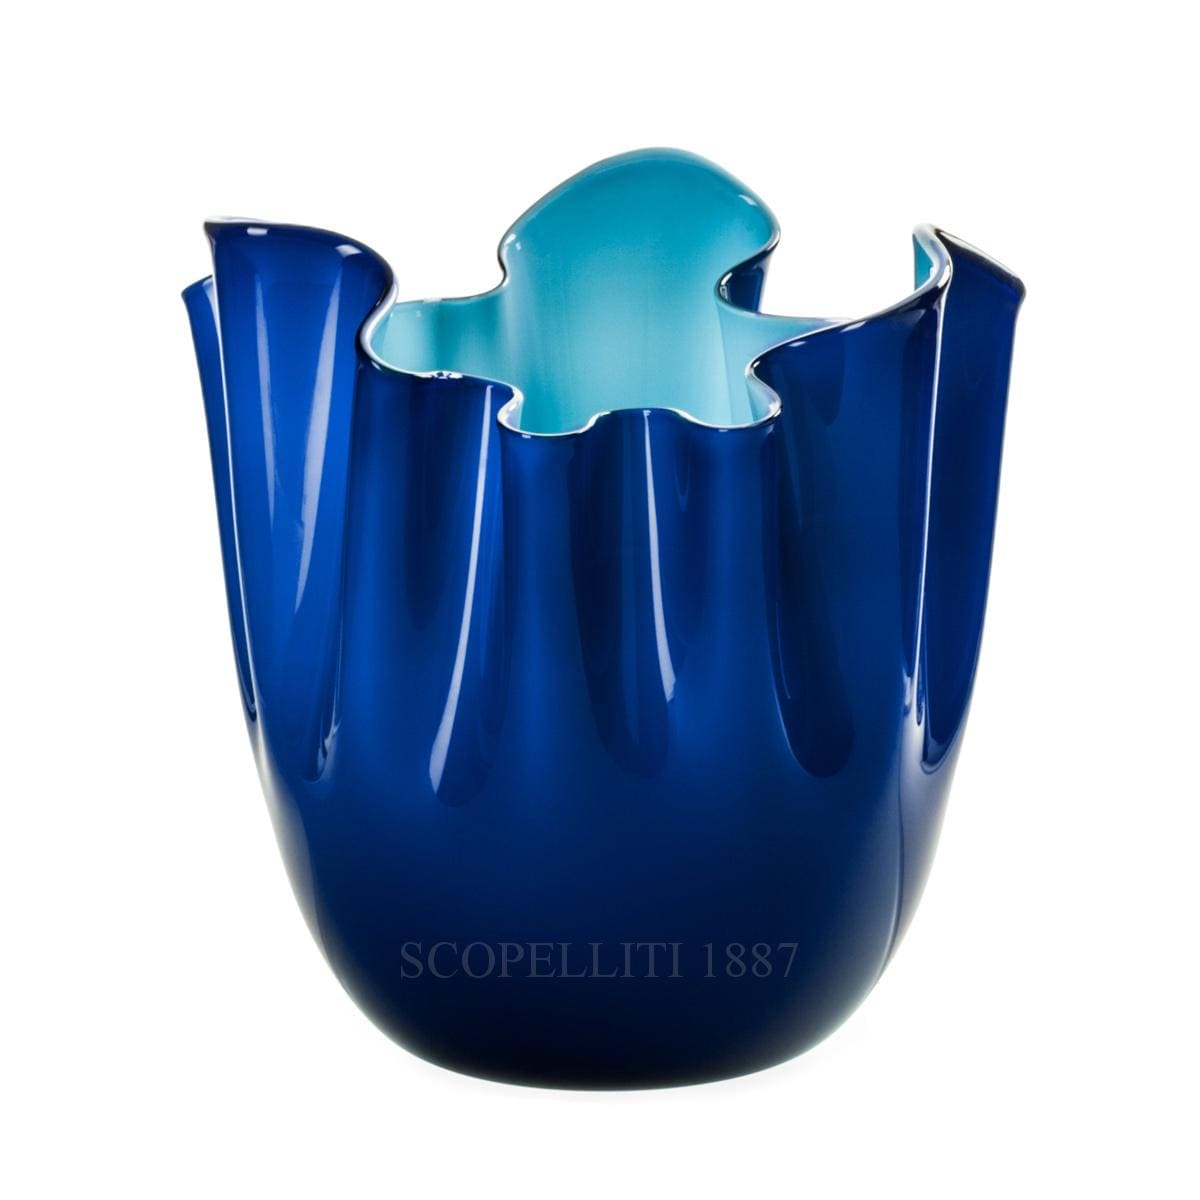 fazzoletto venini vase murano glass blue